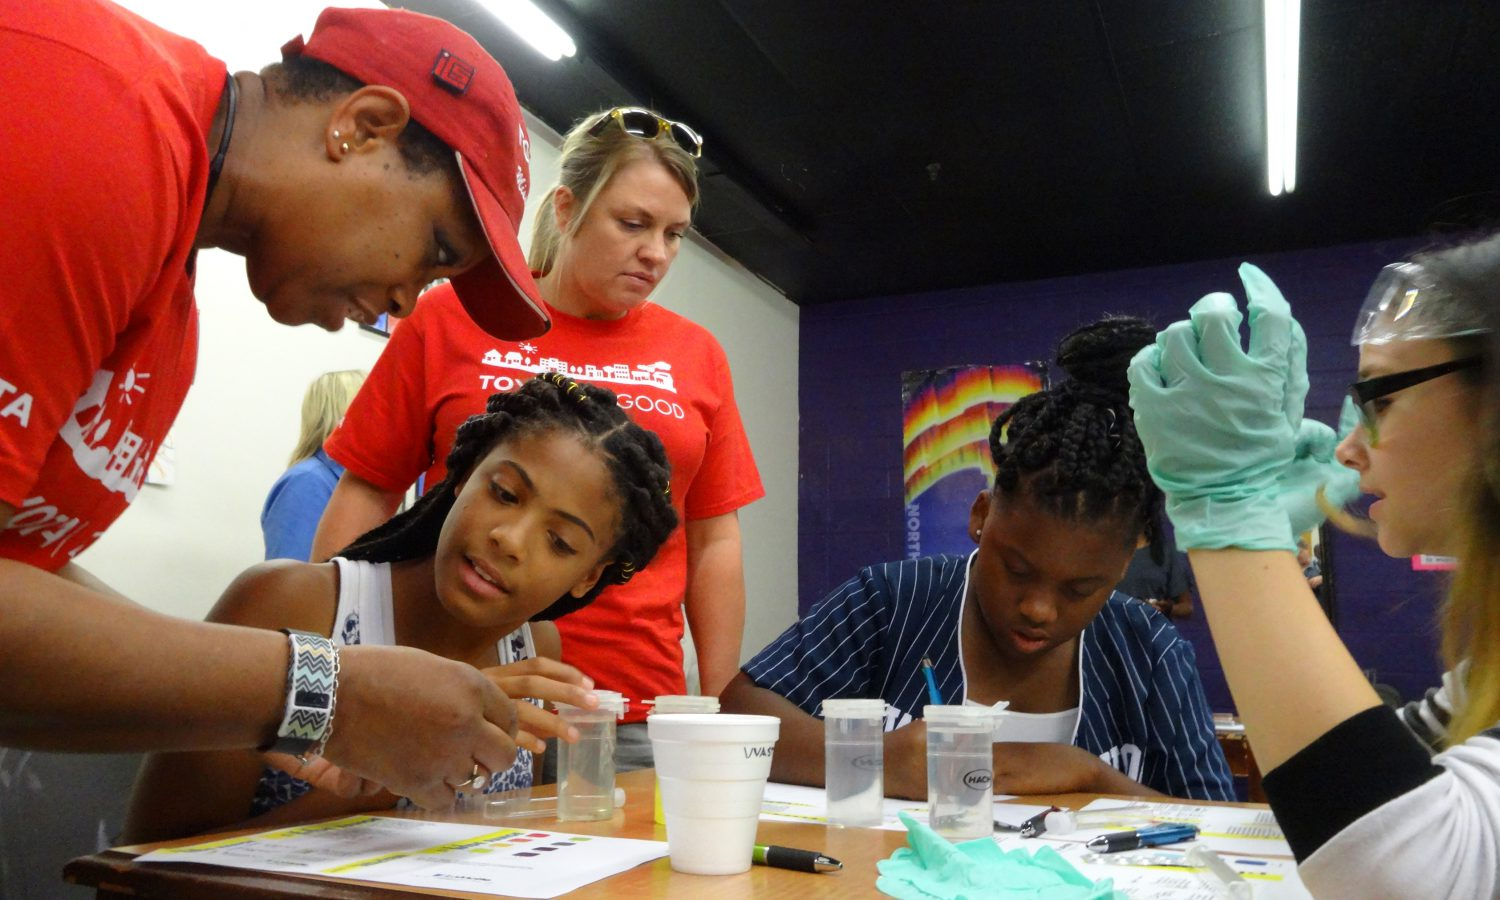 Toyota Gives At-Risk Youth H.O.P.E.